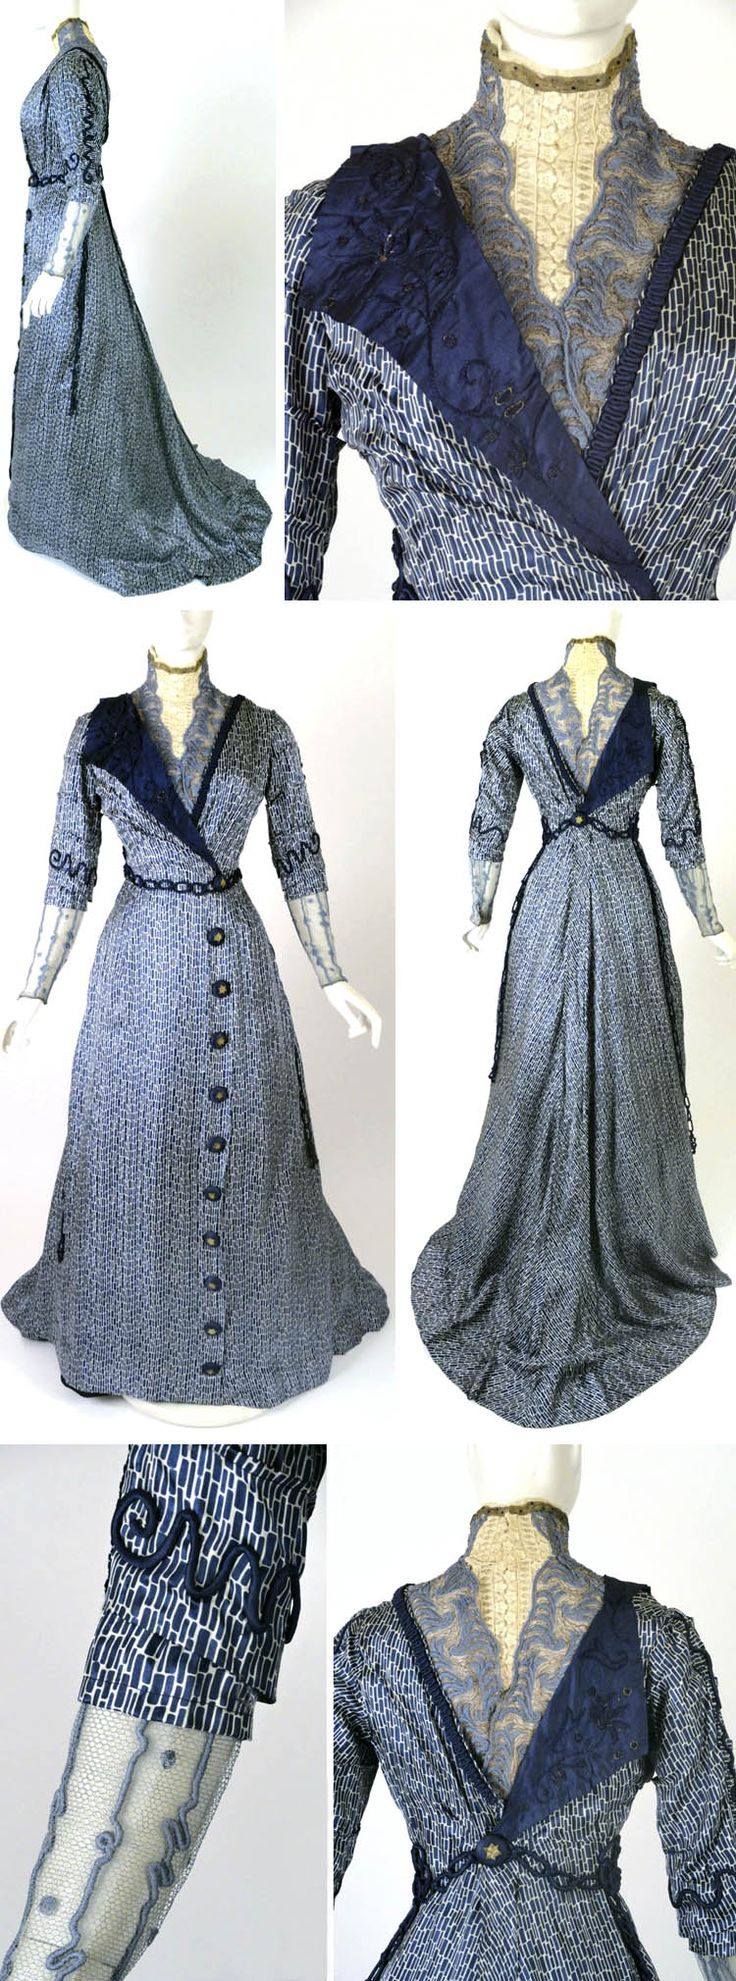 Afternoon gown, J. Franken, Brooklyn, ca. 1910, royal blue & white silk print. White lace & blue & gold embroidered net yoke. White lace standup collar edged in gold bullion ribbon & chiffon ruffle. Elbow-length sleeves w/tucks & piped trim. Silk undersleeves: blue net lower w/sky blue embroidered squiggle. Skirt w/buttons of navy silk & embroidered w/large gold stars in center. Underskirt, ivory chiffon facing yoke & satin bodice lining w/boning. Hook & eye closures back. Vintage Martini